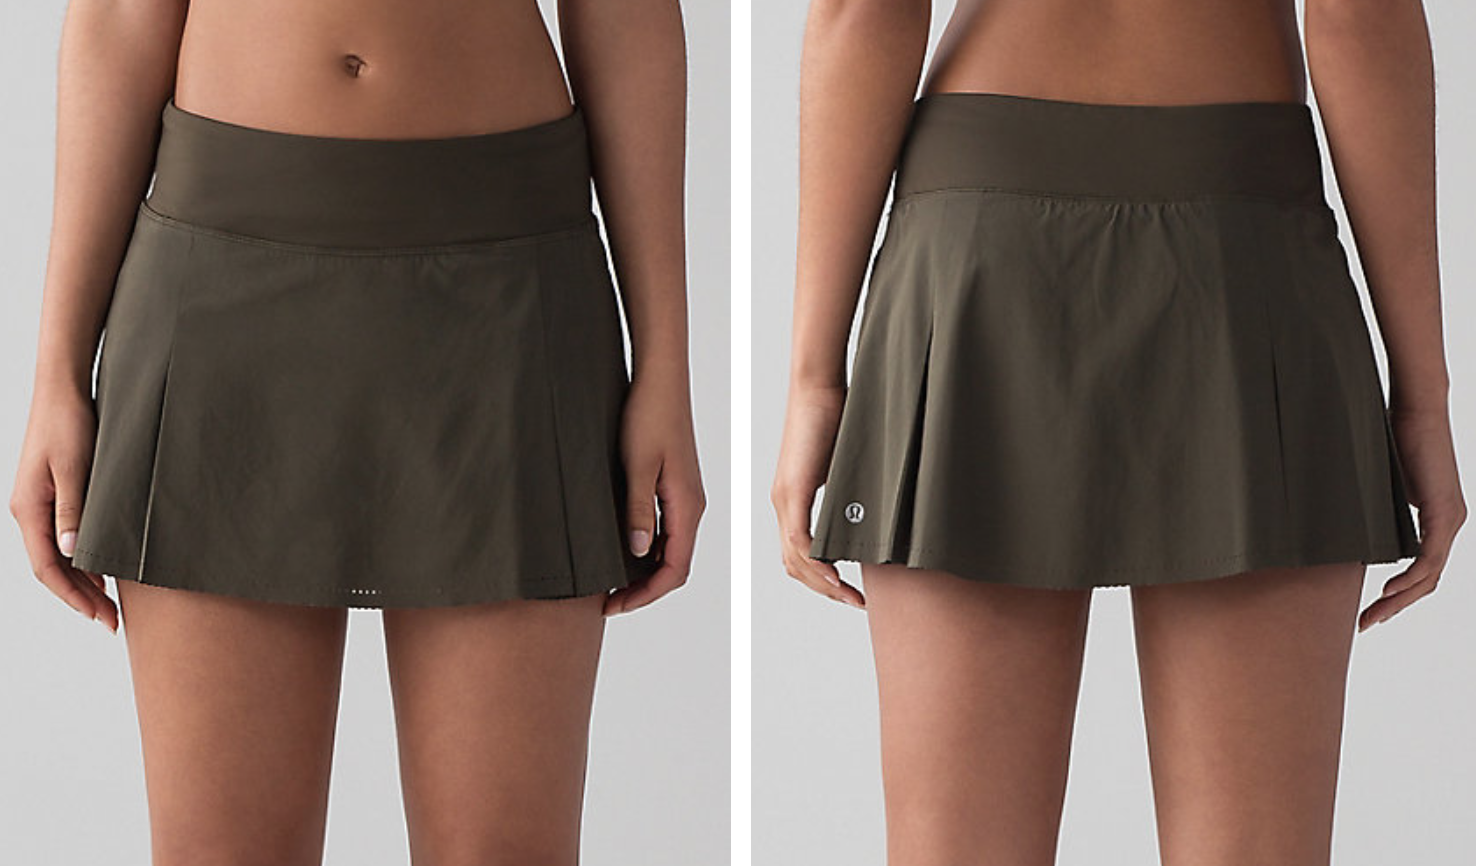 https://api.shopstyle.com/action/apiVisitRetailer?url=https%3A%2F%2Fshop.lululemon.com%2Fp%2Fskirts-and-dresses-skirts%2FSmooth-Stride-Skirt%2F_%2Fprod8431494%3Frcnt%3D53%26N%3D1z13ziiZ7z5%26cnt%3D65%26color%3DLW8752S_026083&site=www.shopstyle.ca&pid=uid6784-25288972-7